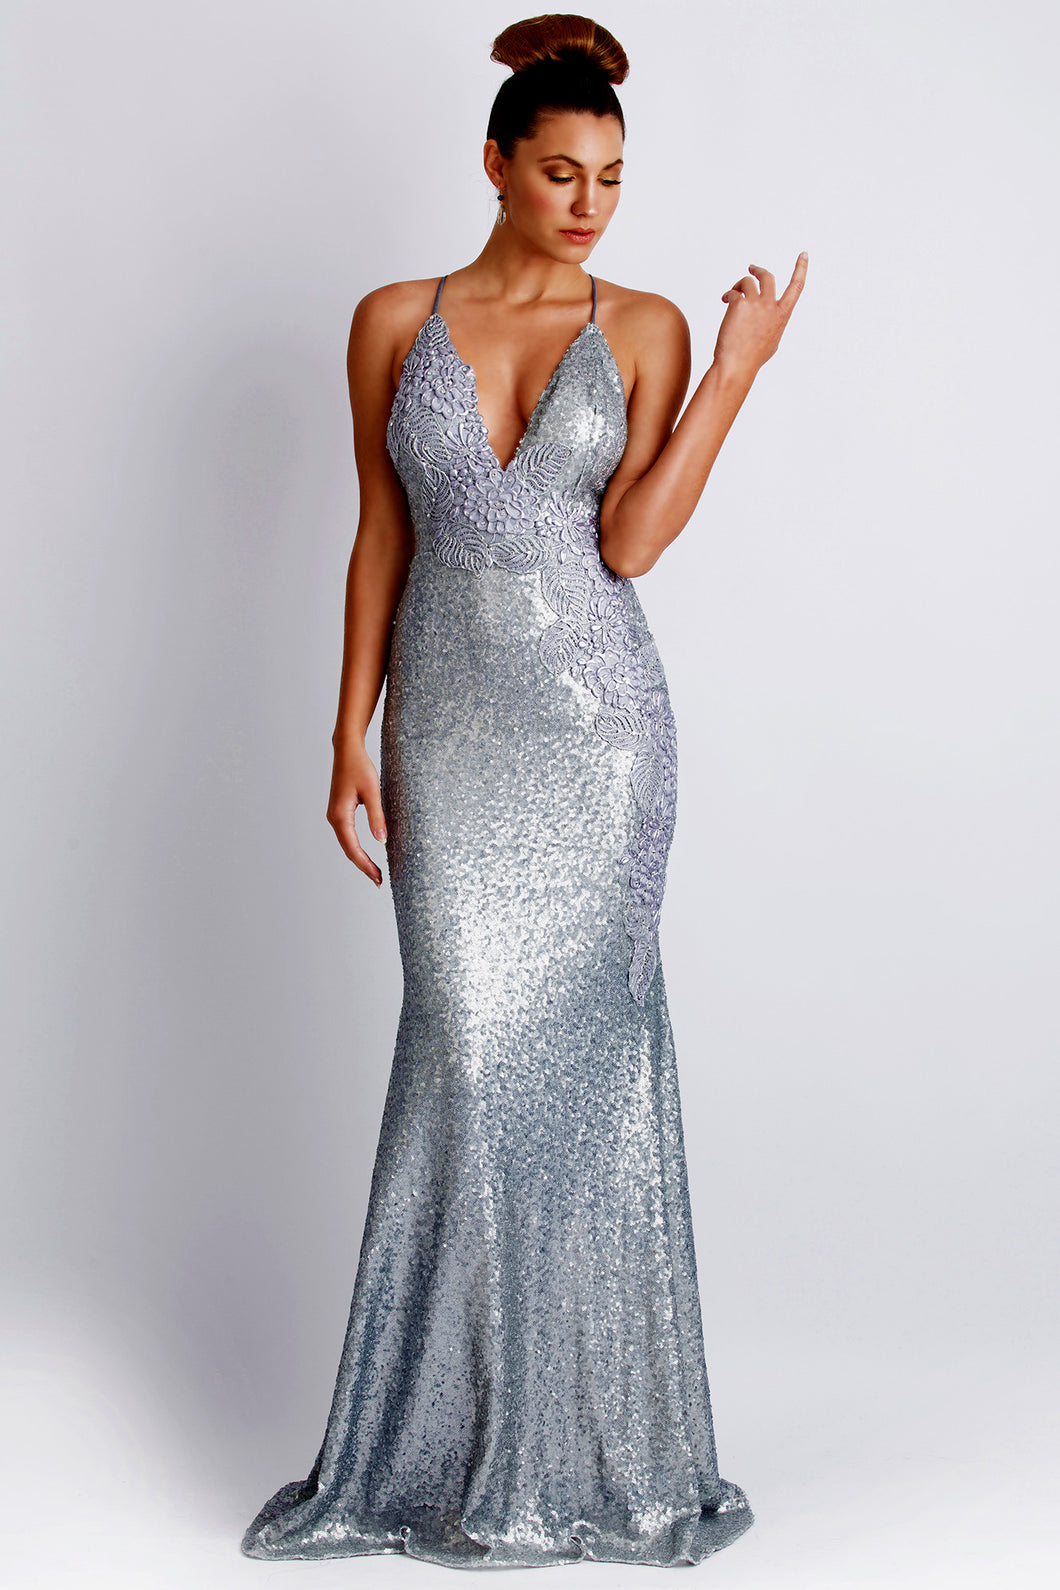 Alison Sequin Silver Long Dress. Gowns - BACCIO Couture